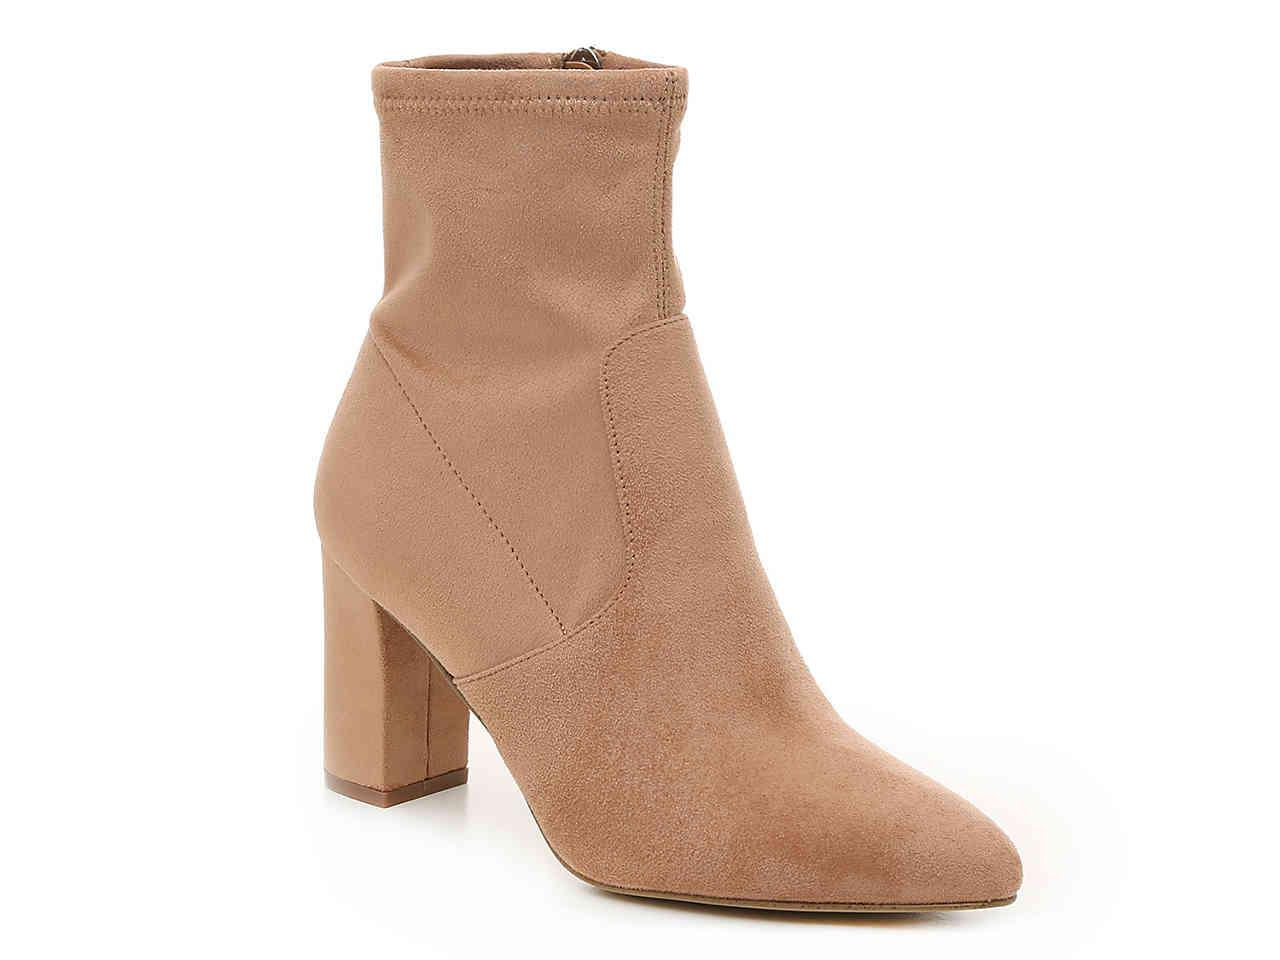 482767fcd8e Lyst - Steve Madden Edril Bootie in Brown - Save 29%